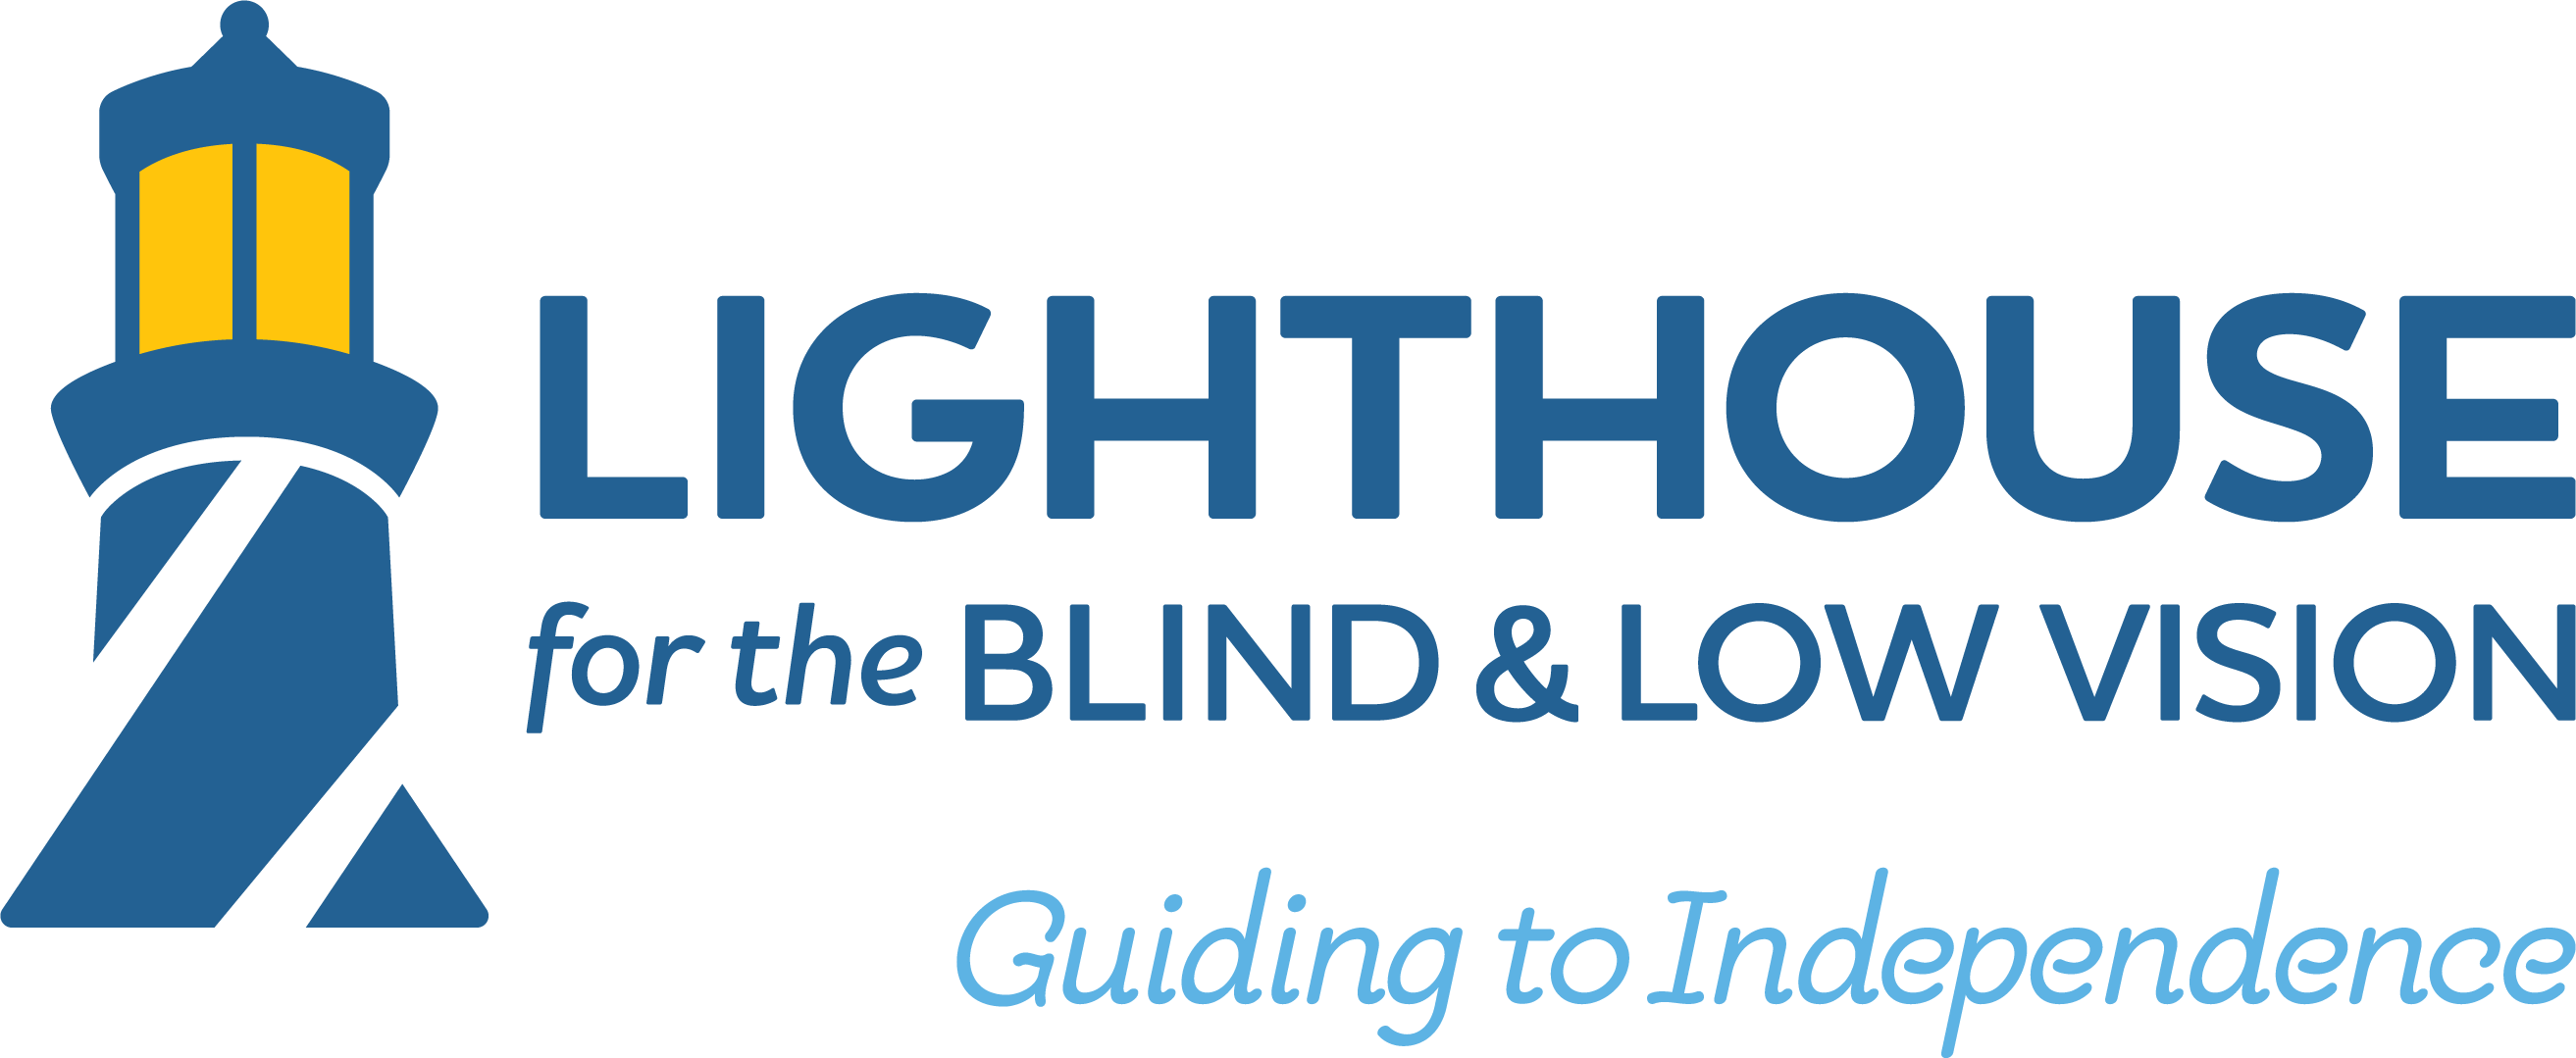 Lighthouse for the Blind & Low Vision